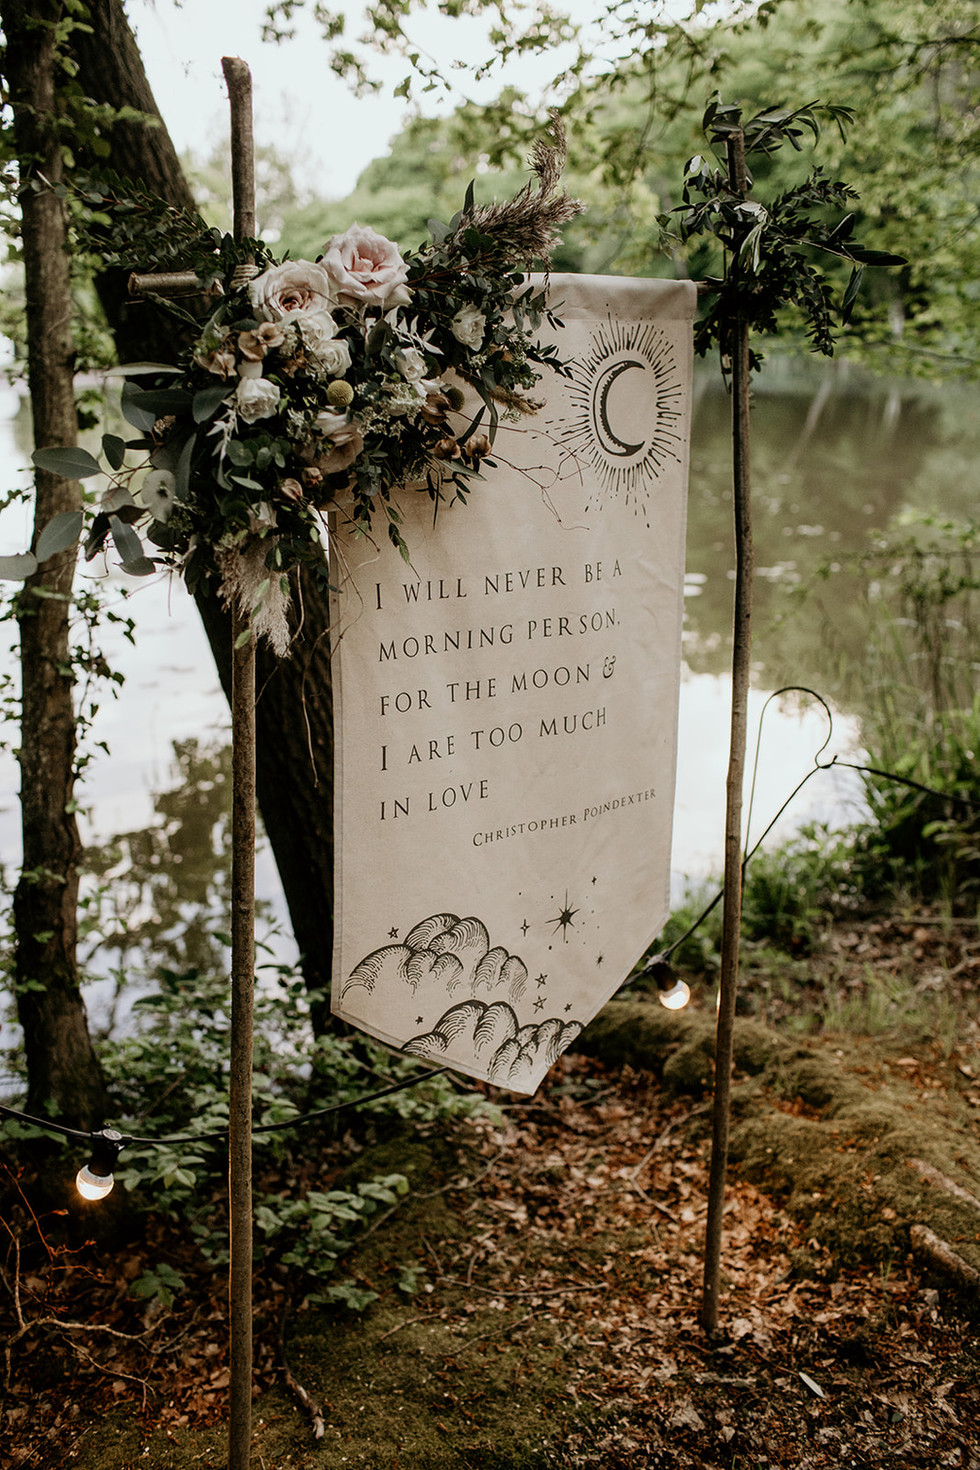 This and a choice of many more beautiful banners are available to buy for your woodland wedding, or purhapes you'd like to design your own? A perfect keepsake!  More details available upon request.